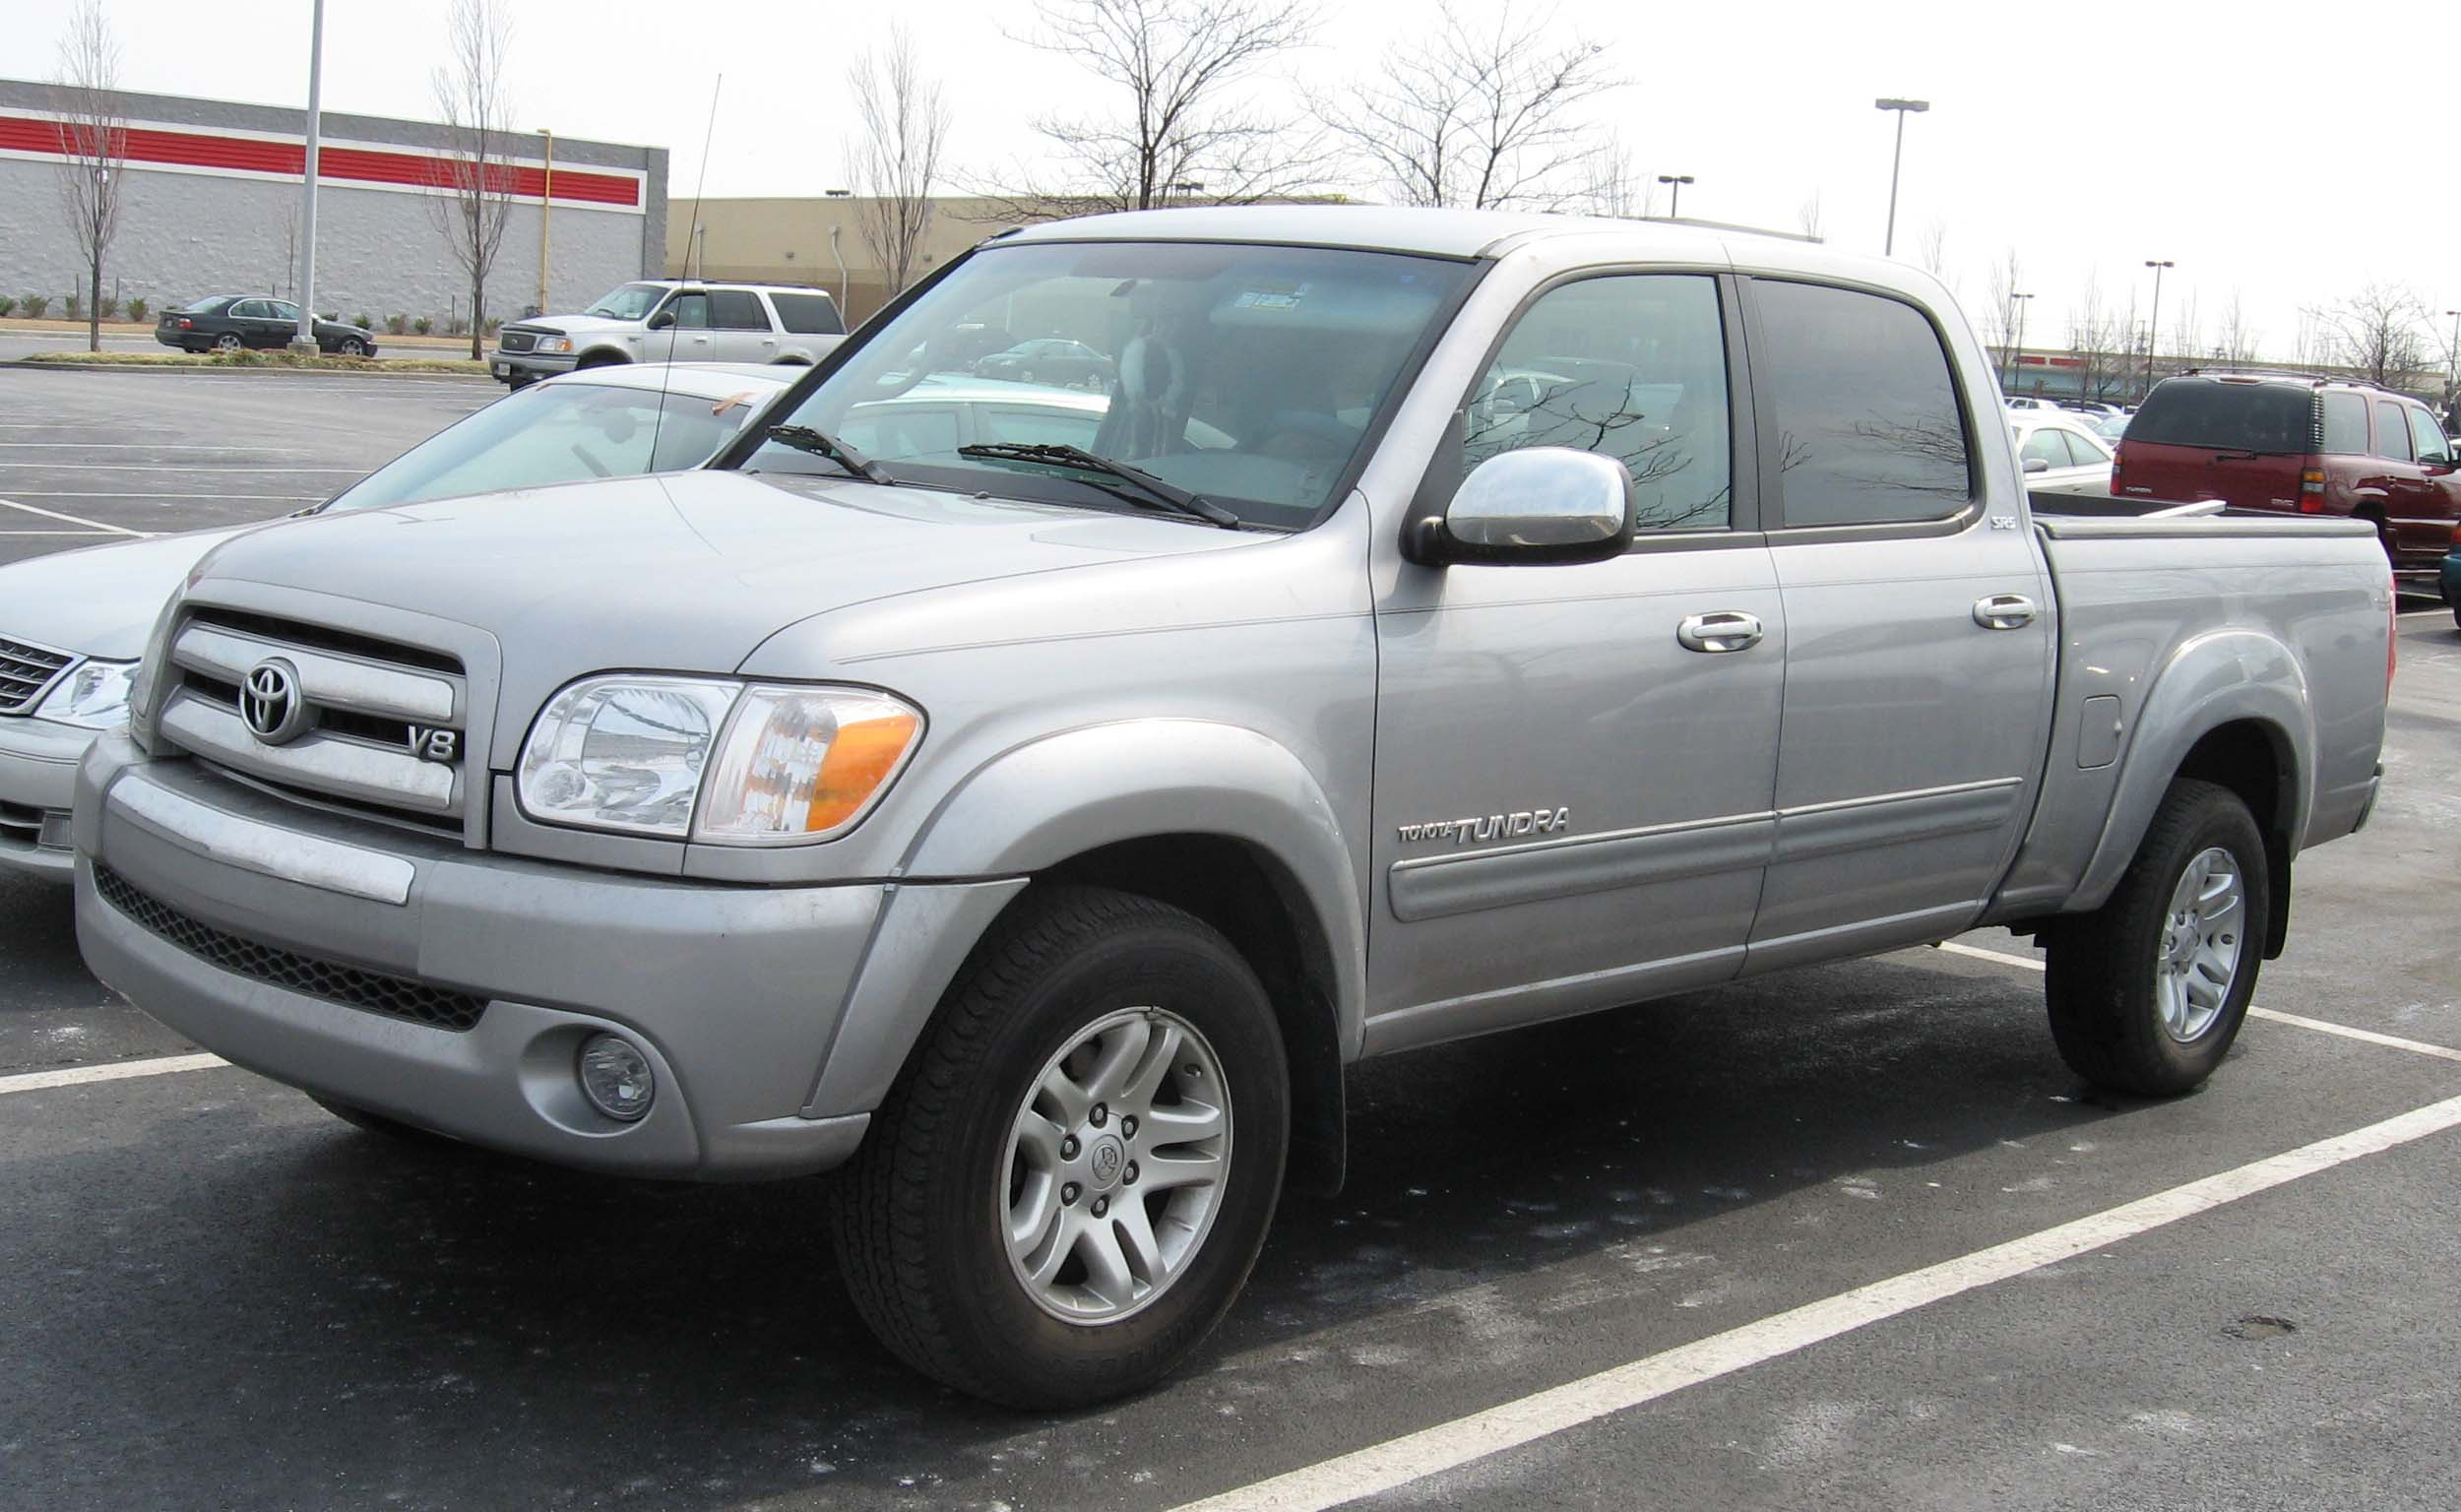 2004 toyota tundra information and photos zombiedrive. Black Bedroom Furniture Sets. Home Design Ideas